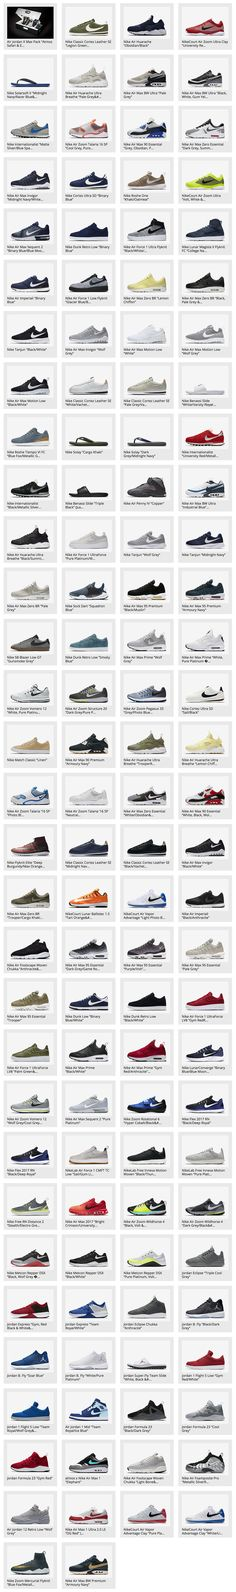 122 Nike & Jordan Brand Sneakers That Recently Released in Europe